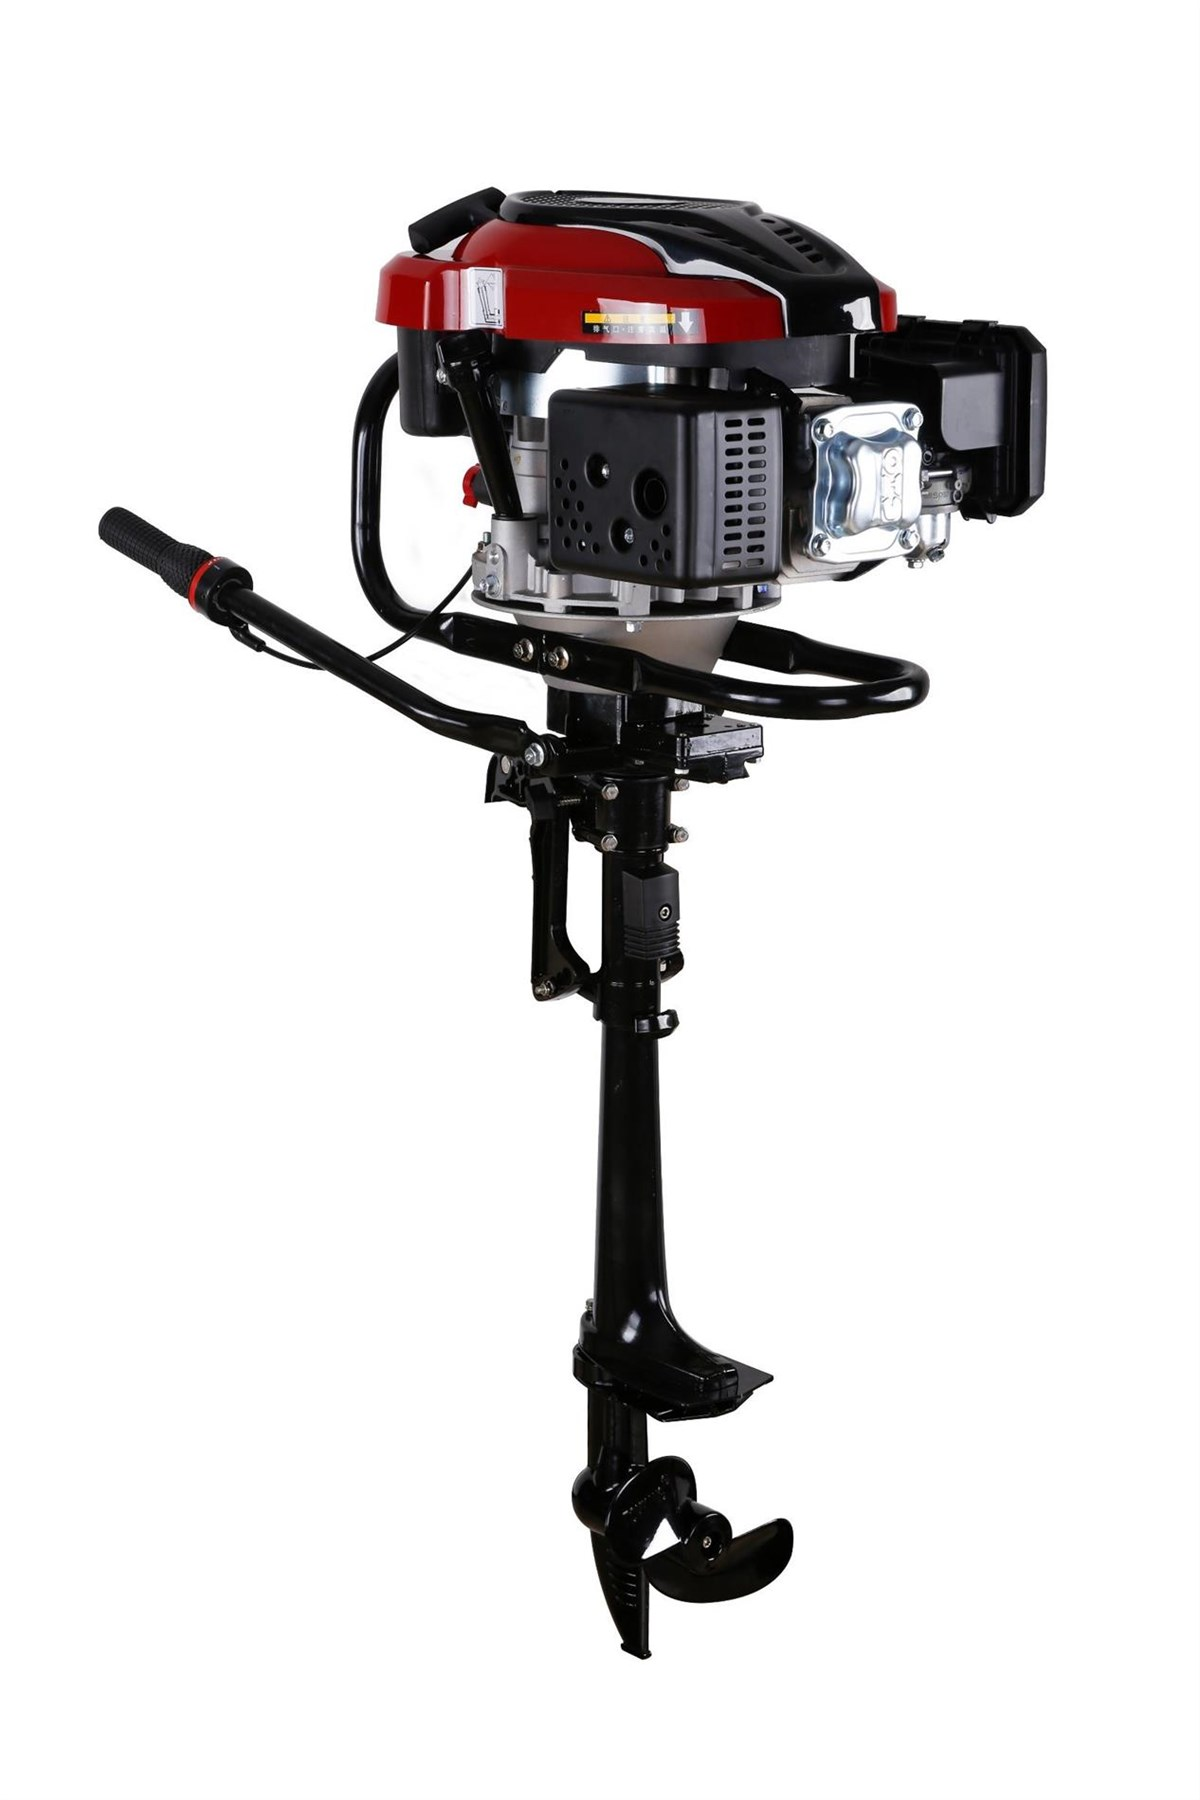 Tomking TK139FD 7 HP Recoil Start Outboard Motor (Worldwide Free Shipping  with DHL Express)